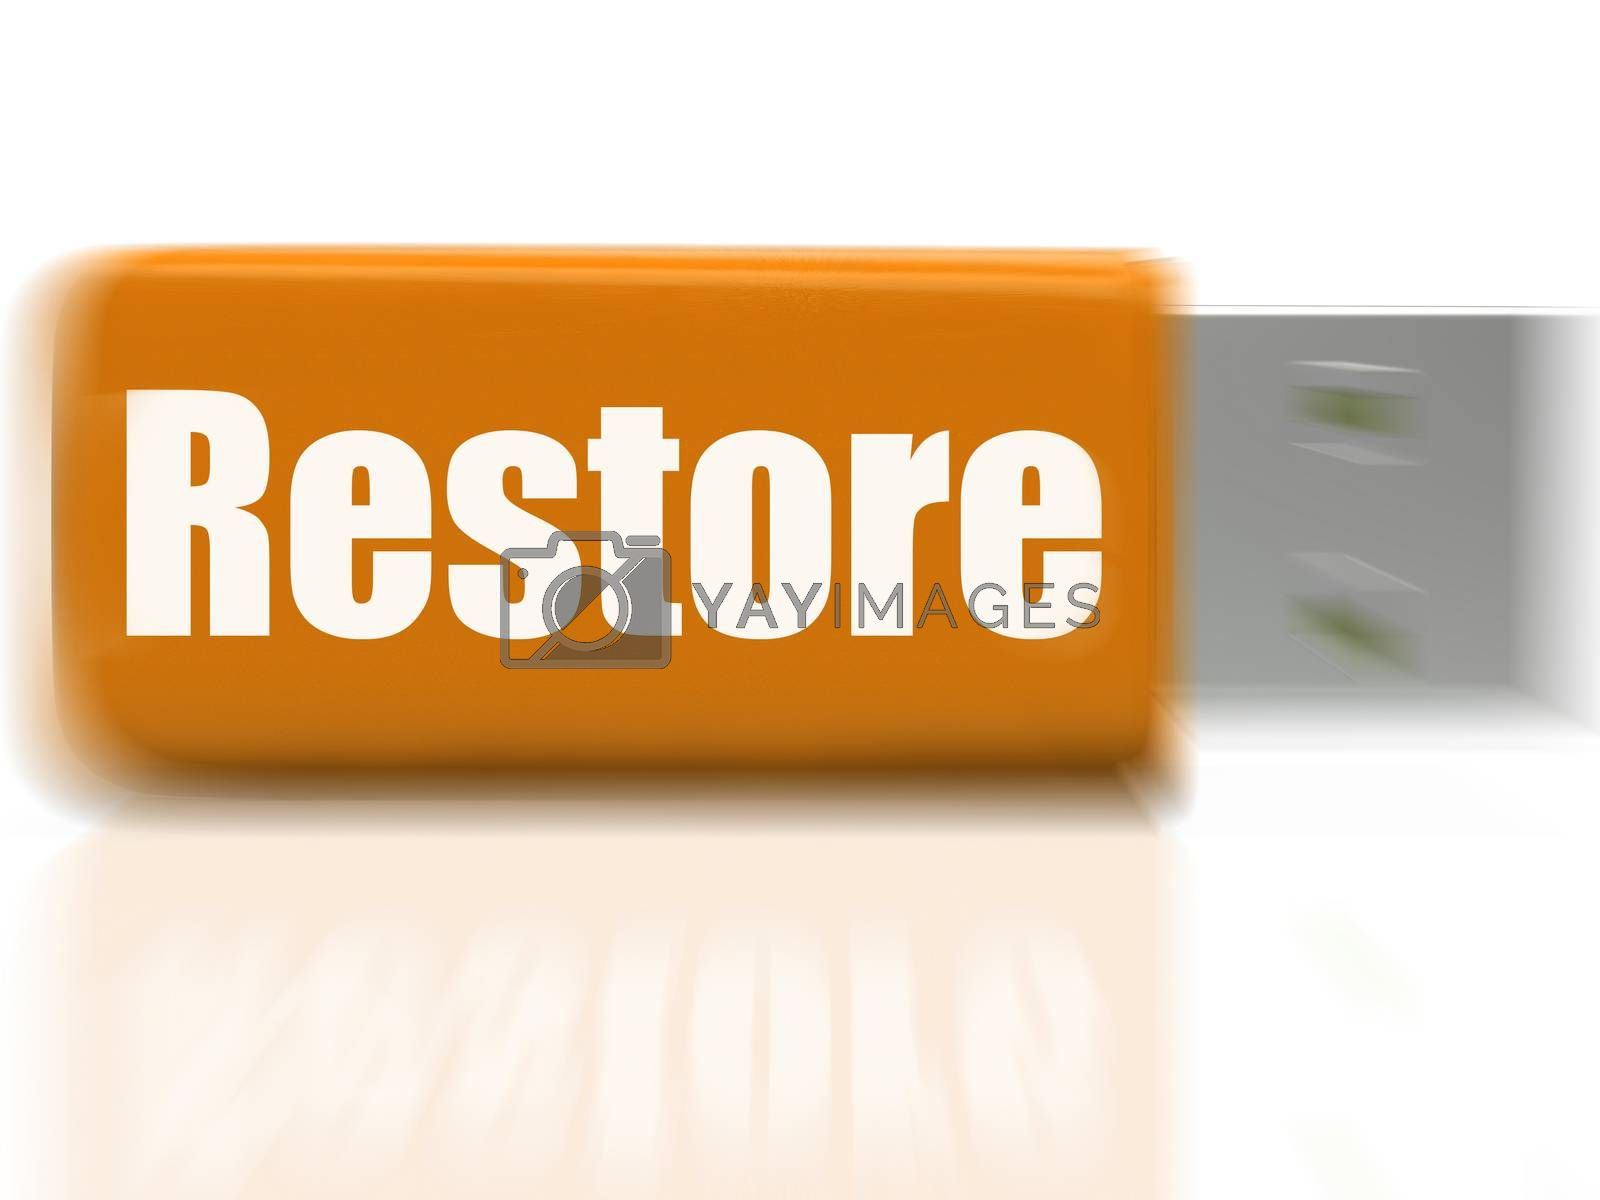 Restore USB drive Shows Data Security And Restoration by stuartmiles